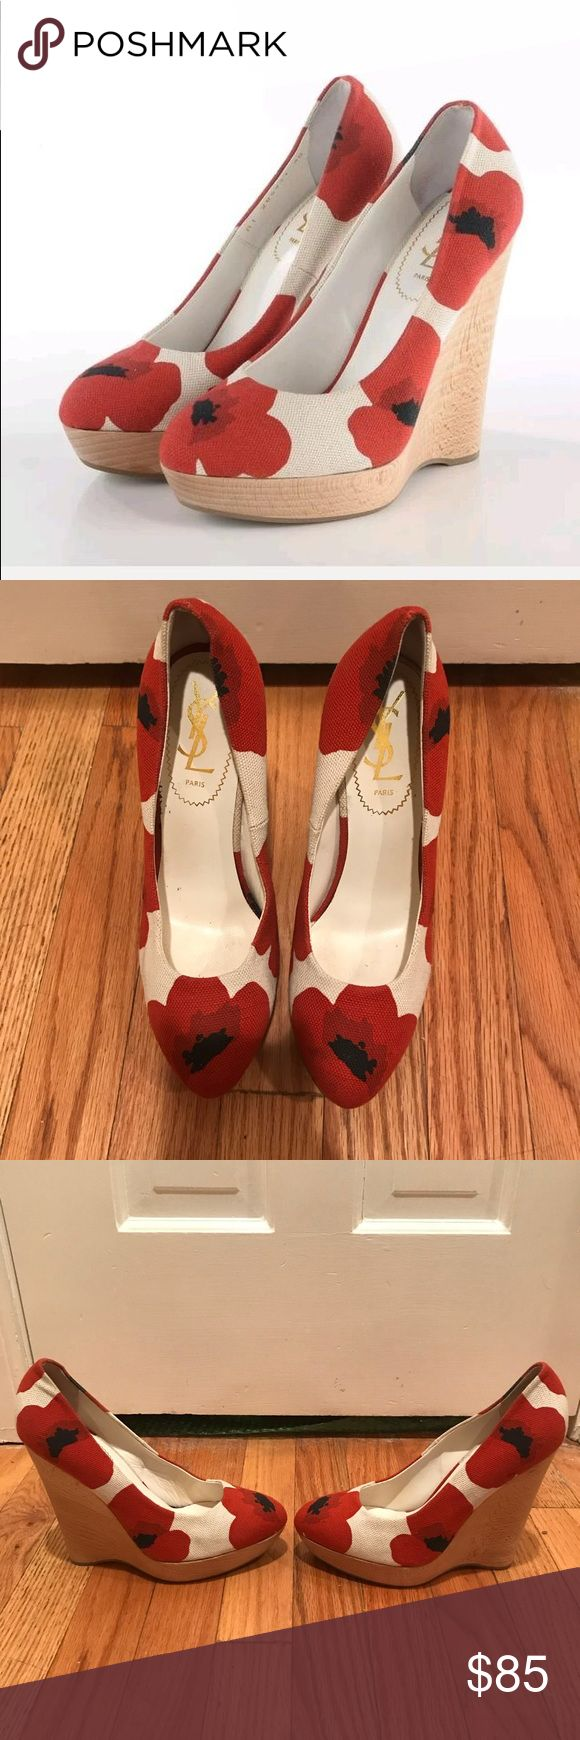 ‼️SALE‼️YSL Poppy Marina Canvas Wedges Size 37.5! These stunning canvas Yves Saint Laurent canvas poppy print platform Wedges make a great statement piece. Dress up your jeans or pair these with a little black dress to give some color. They feature a wooden wedge on an Approx 1 inch platform and a 5 1/2 inch wedge. They are good used condition with slight wear and marks to canvas and slight scuffing to soles. They are a size 37.5! Does not include original box or dust bag. Yves Saint Laurent…